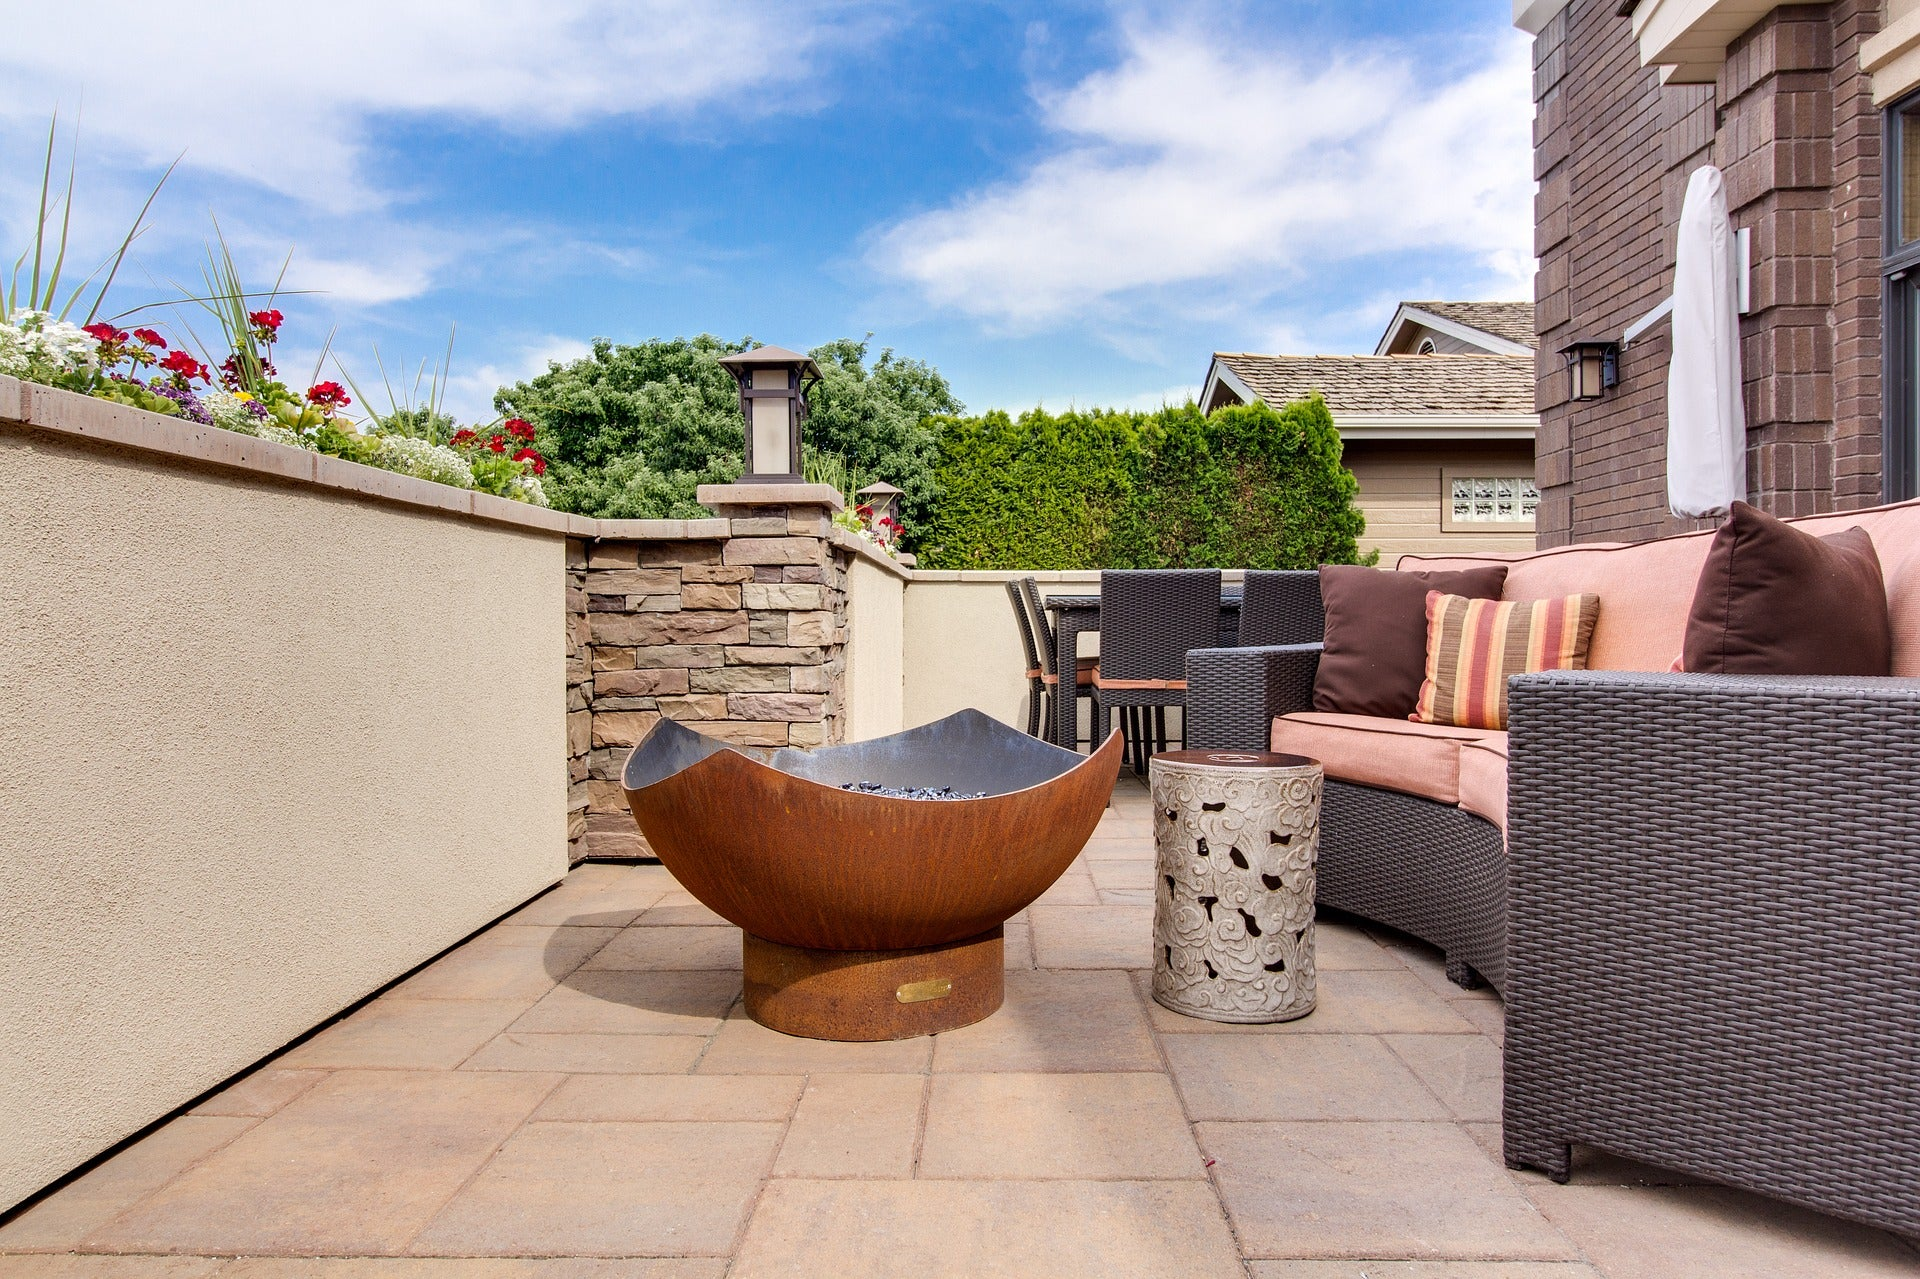 Outdoor Tiles: Design, Trends, and Ideas